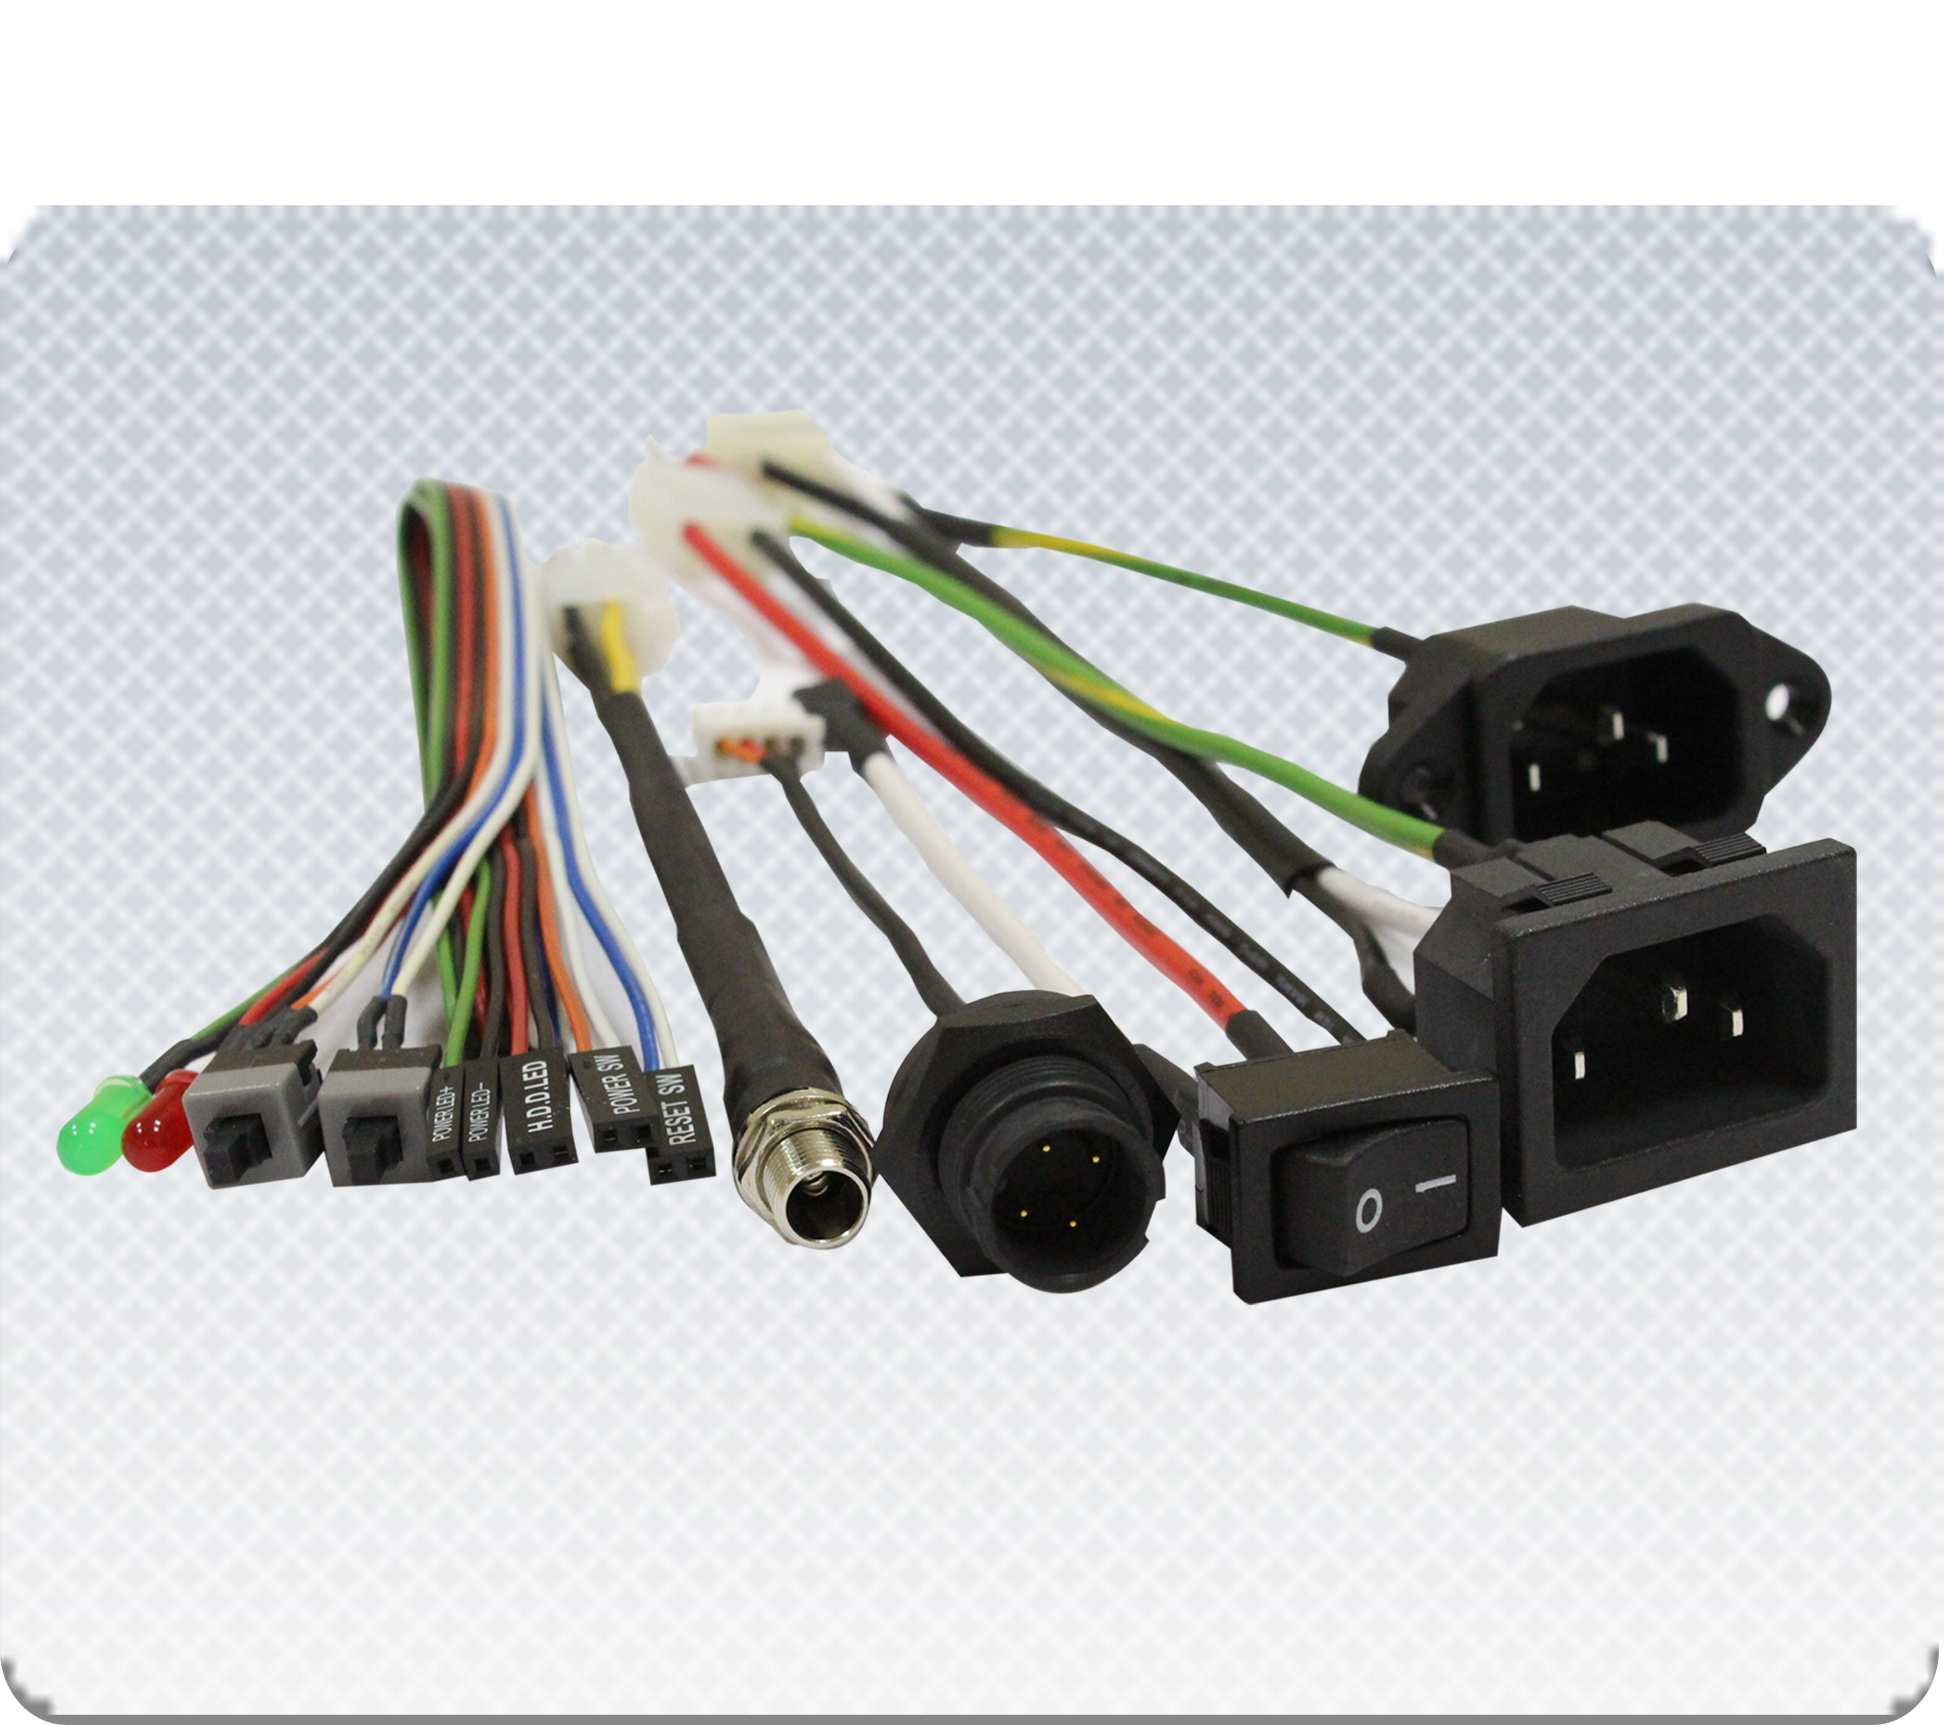 Wiring Harness(1)(3) molded cable, molded cable manufacturer & supplier molded wire harness at gsmportal.co